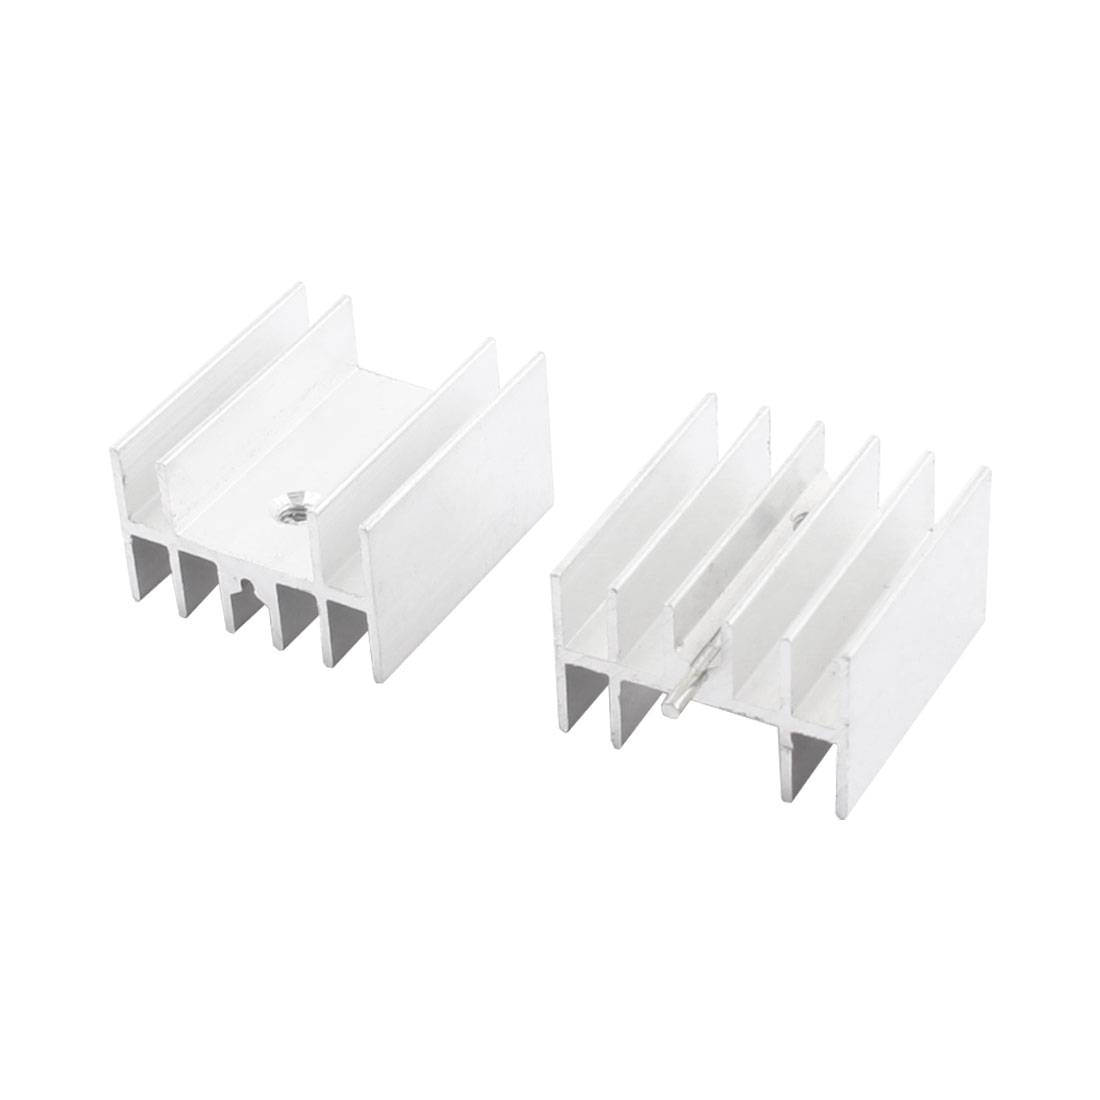 2Pcs 23mm x 16mm x 25mm Aluminium Screw Mount Radiator Fin Cooling Cooler Heatsink Heat Sink w Needle for PCB Board